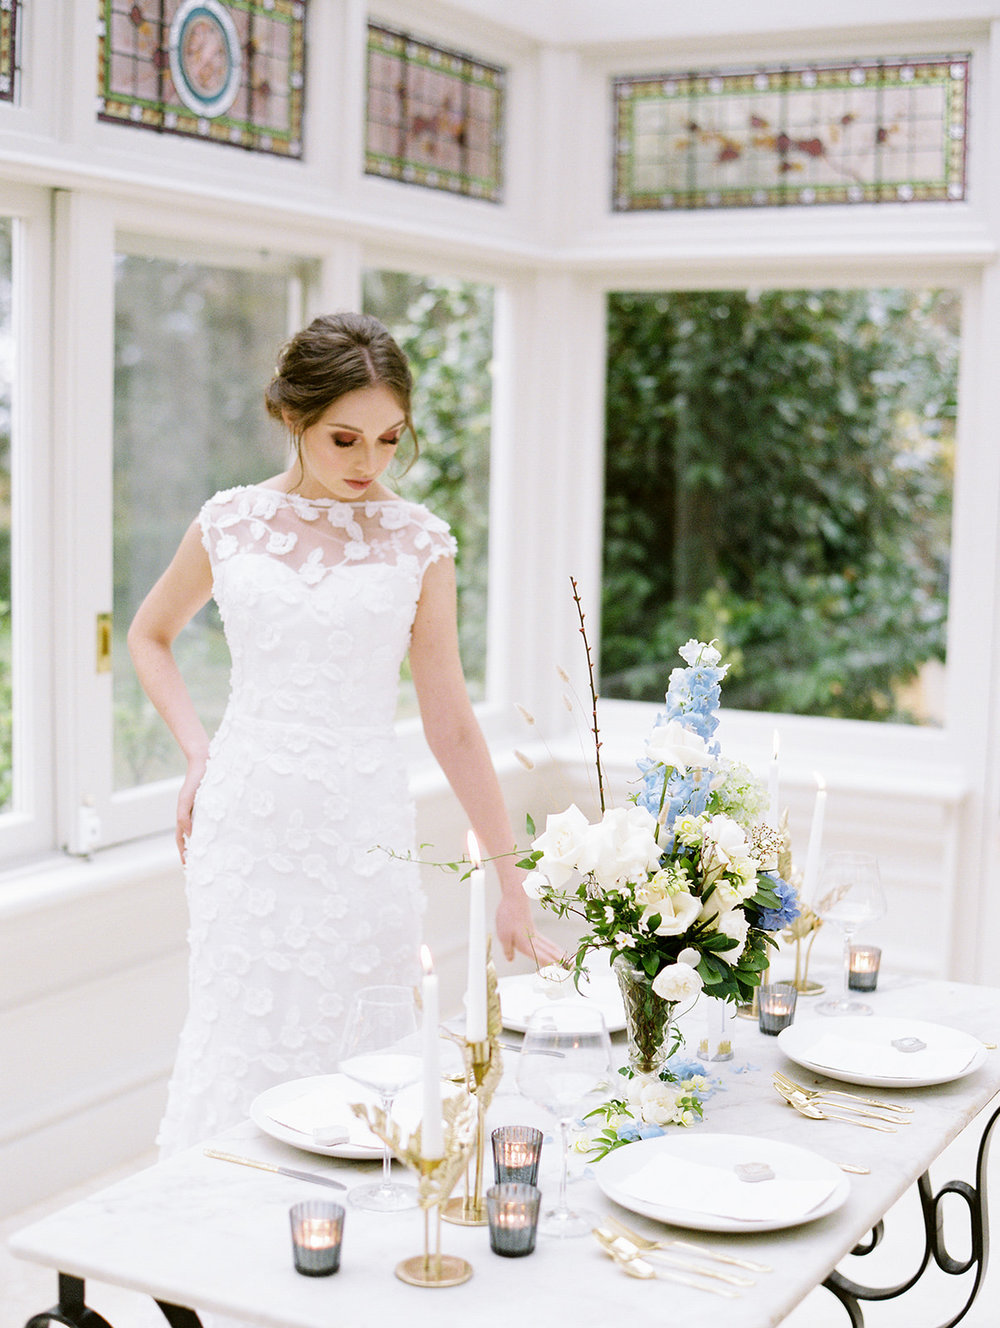 SOFT FRENCH WINTER - FEATURED: WEDDINGCHICKS.COM(DECEMBER 2018)